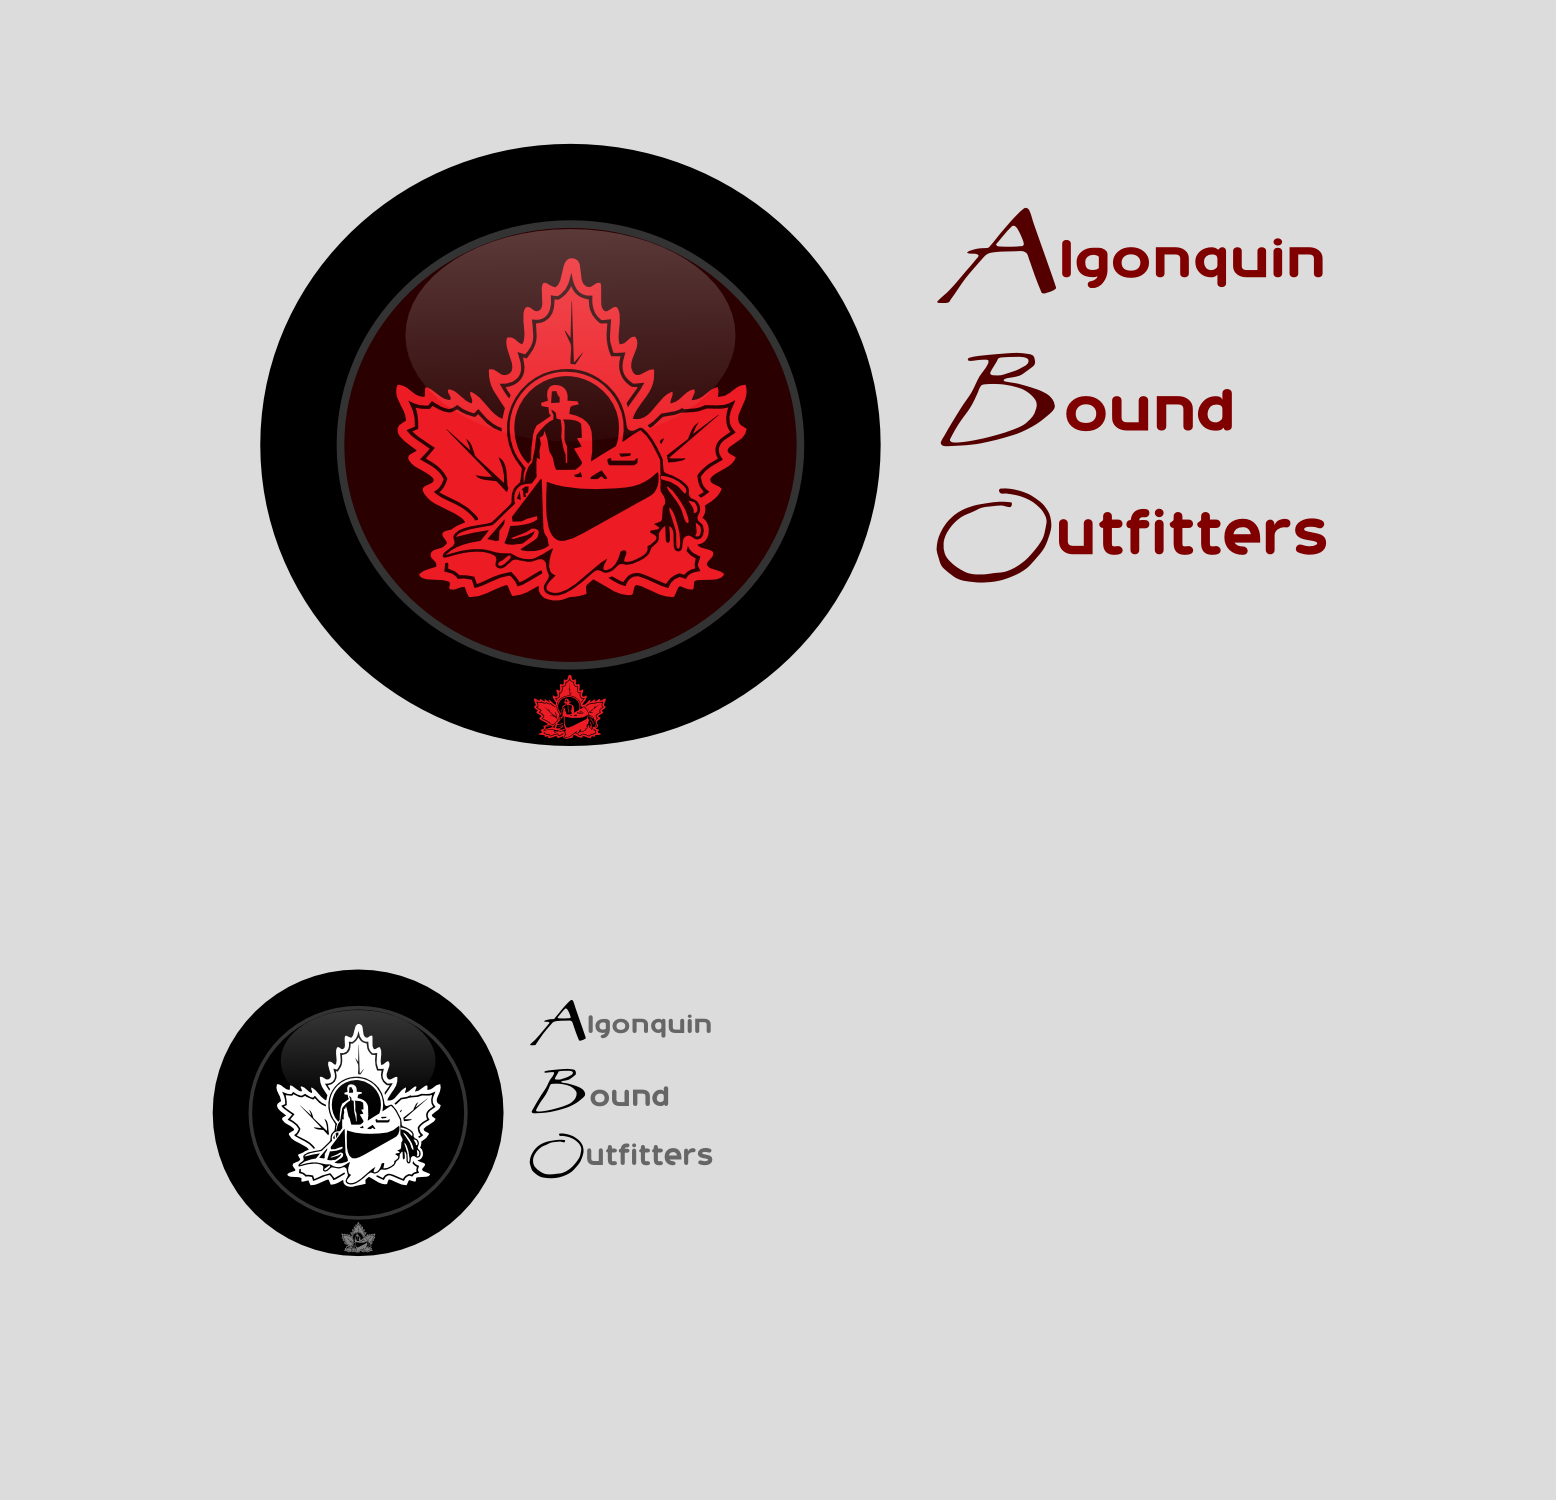 Logo Design by Arindam Khanda - Entry No. 126 in the Logo Design Contest Captivating Logo Design for Algonquin Bound Outfitters.